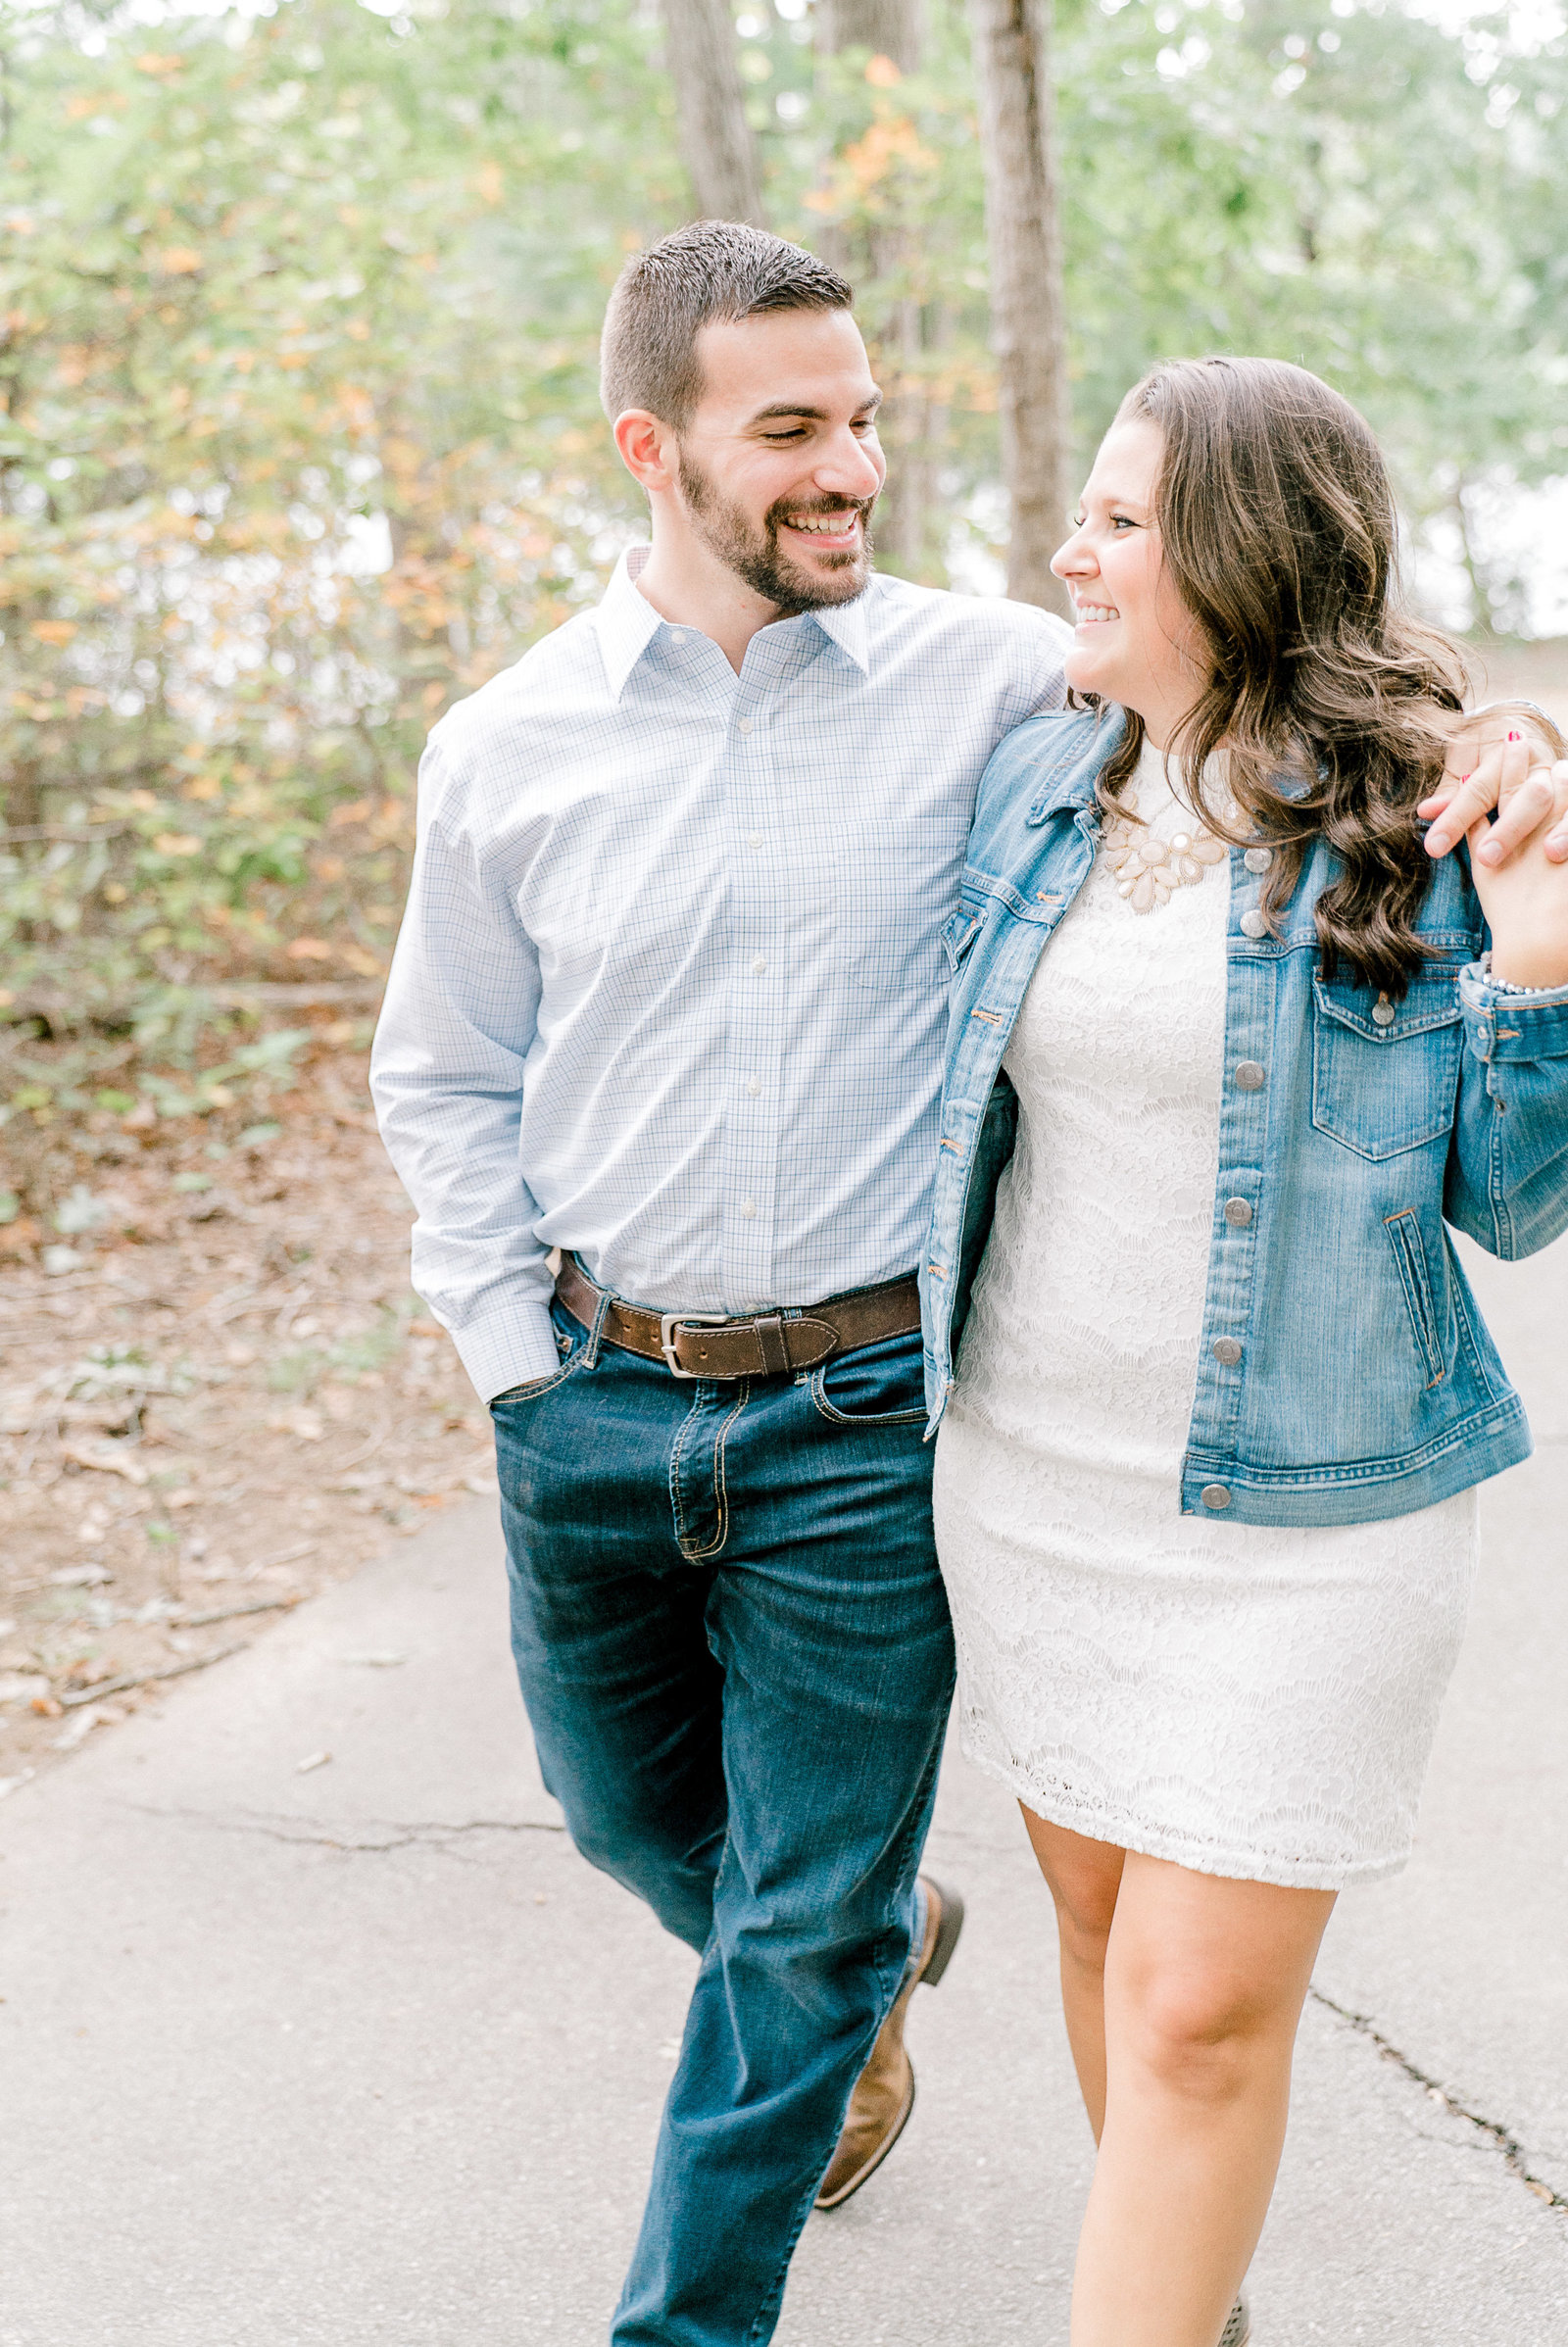 charlotte-engagement-photographer-bright-and-airy-charleston-savannah-asheville-nc-sc-north-carolina-south-carolina-alyssa-frost-photography-16